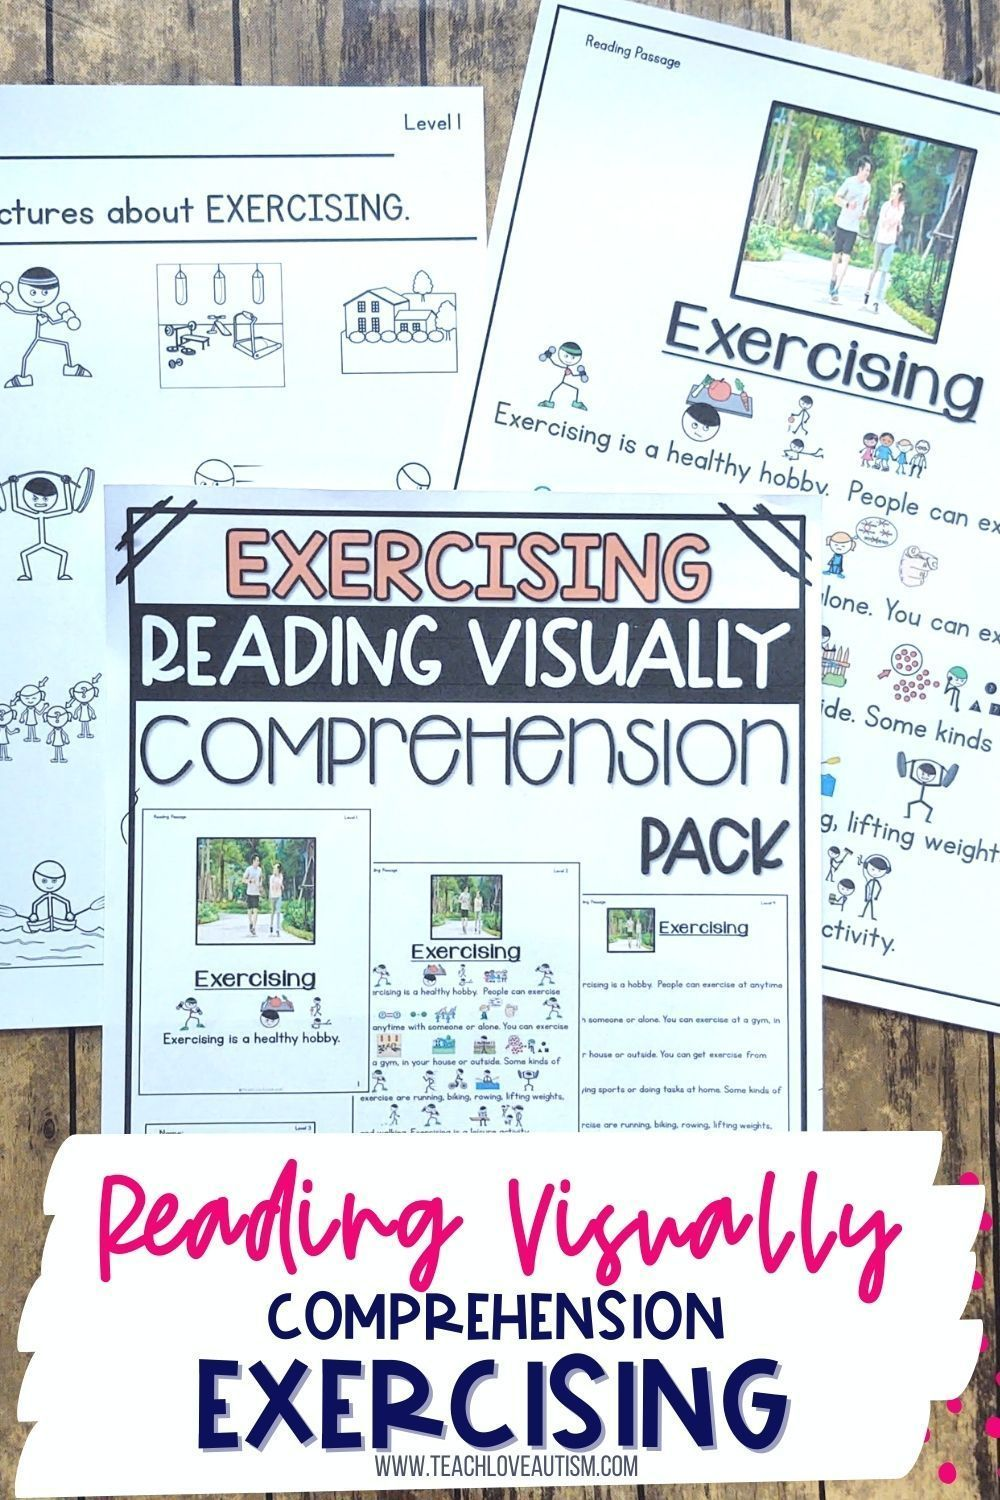 Exercising Reading Visually Comprehension In 2021 Special Education Reading Reading Comprehension Activities Special Education Students [ 1500 x 1000 Pixel ]